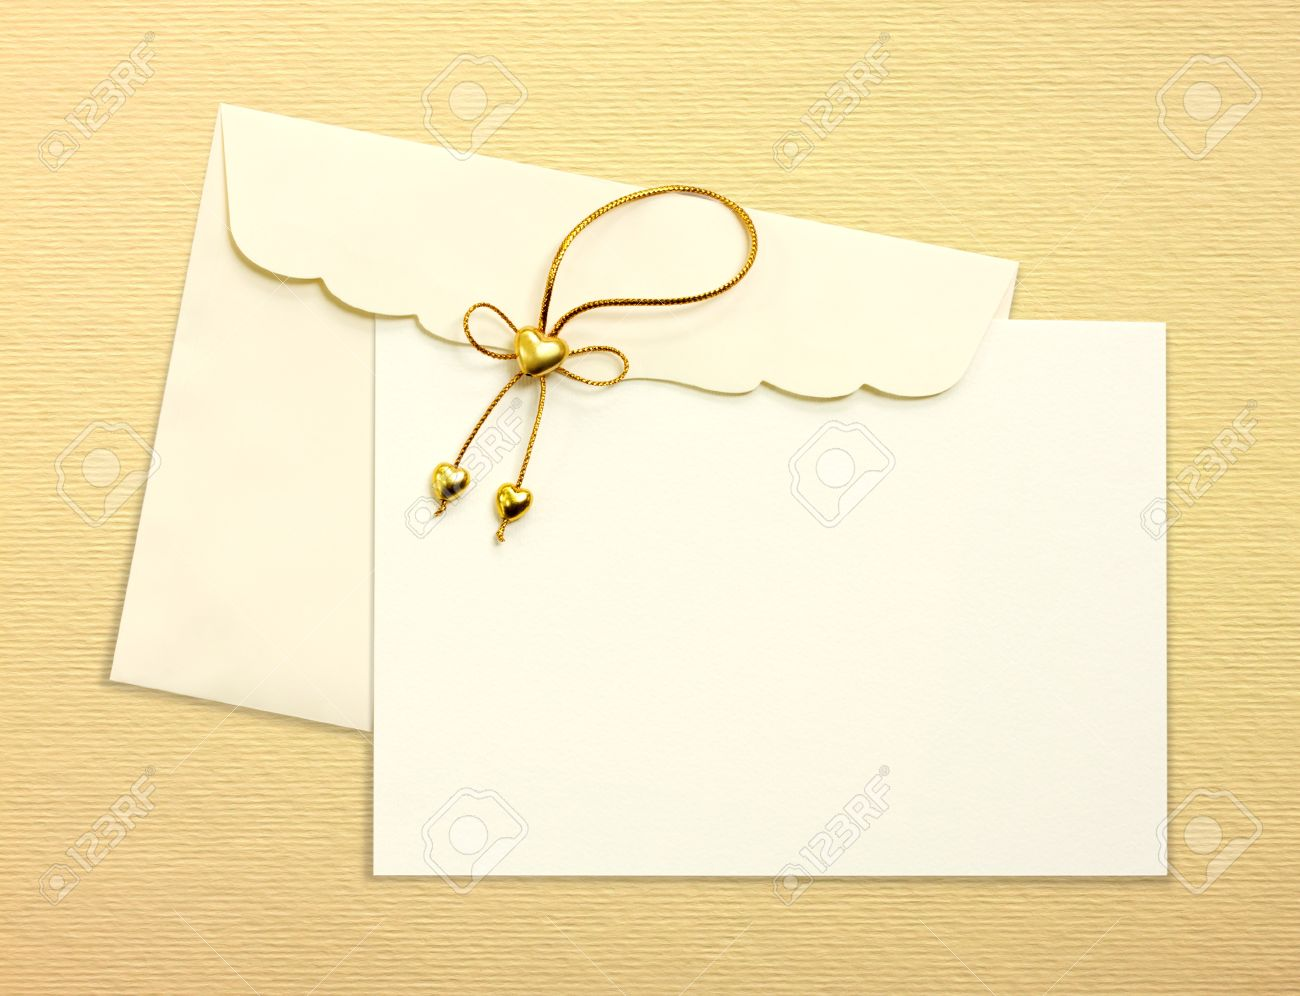 Envelope And Mail Wedding Invitations Golden Heart On Yellow